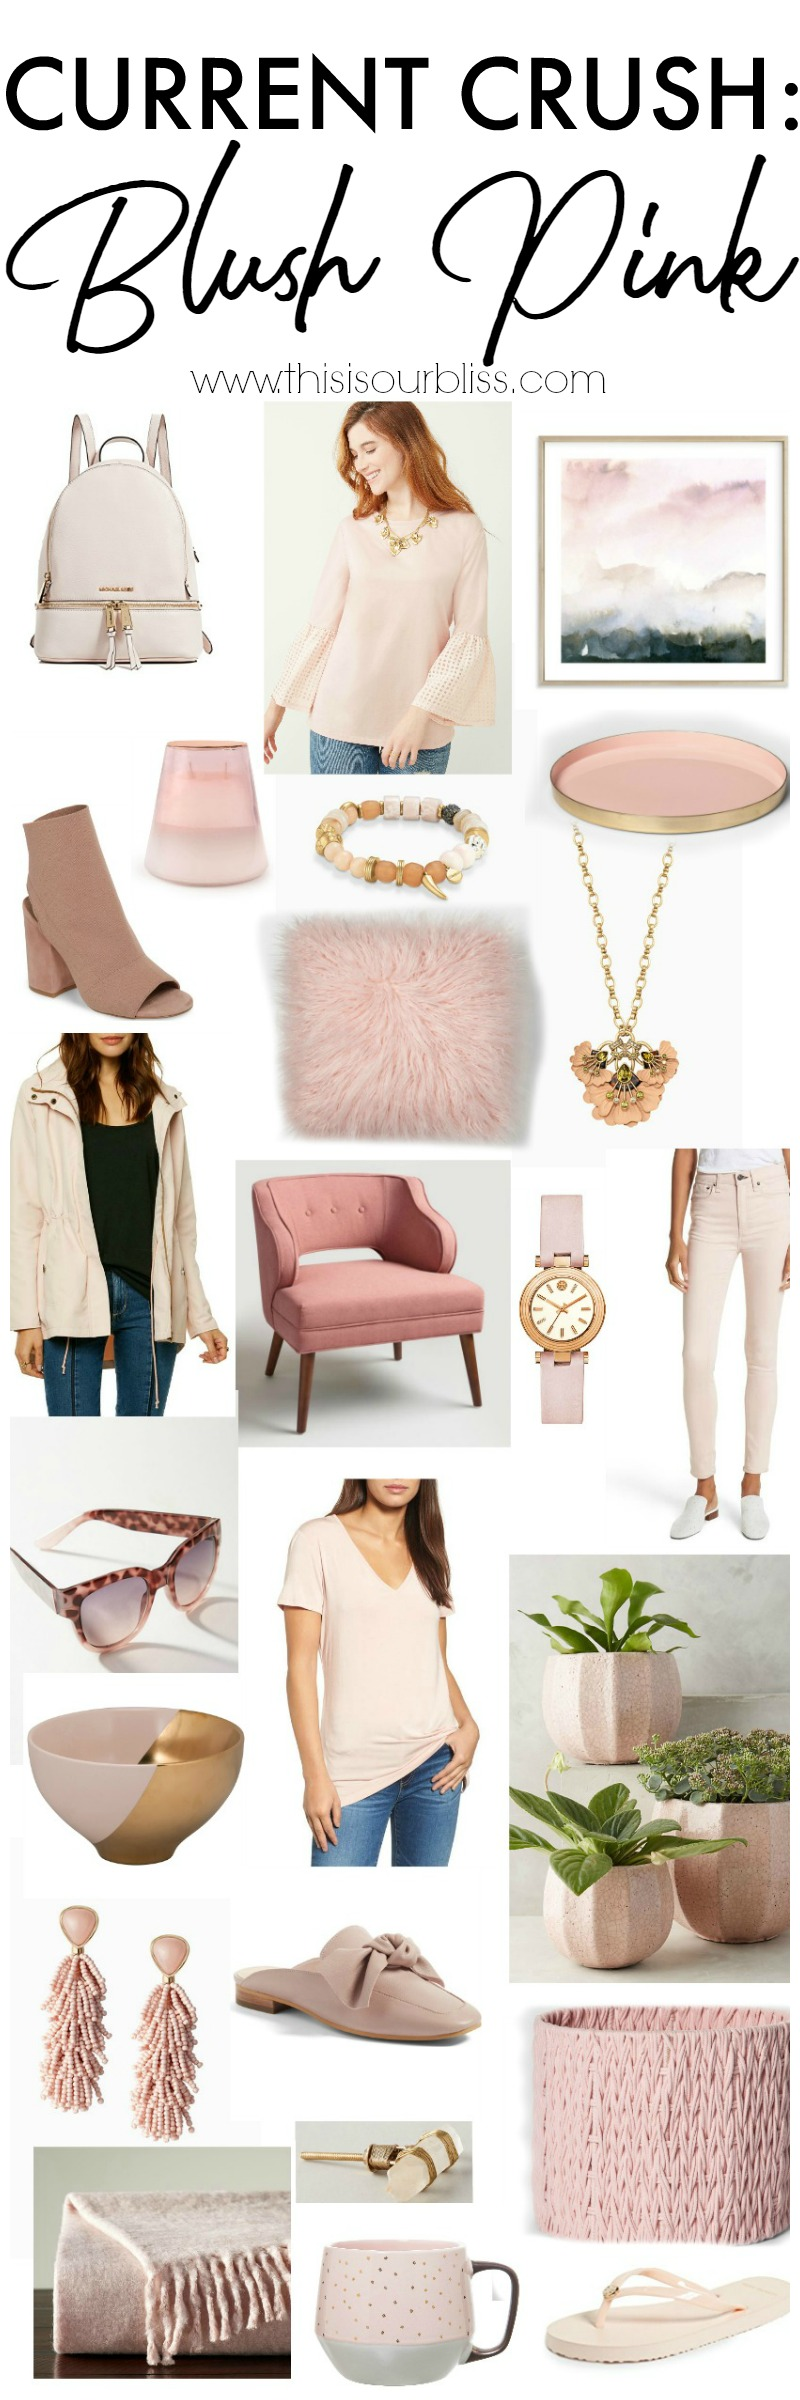 Current Crush - Blush Pink - All of the Blush Pink things I am eyeing, buying and styling! - This is our Bliss